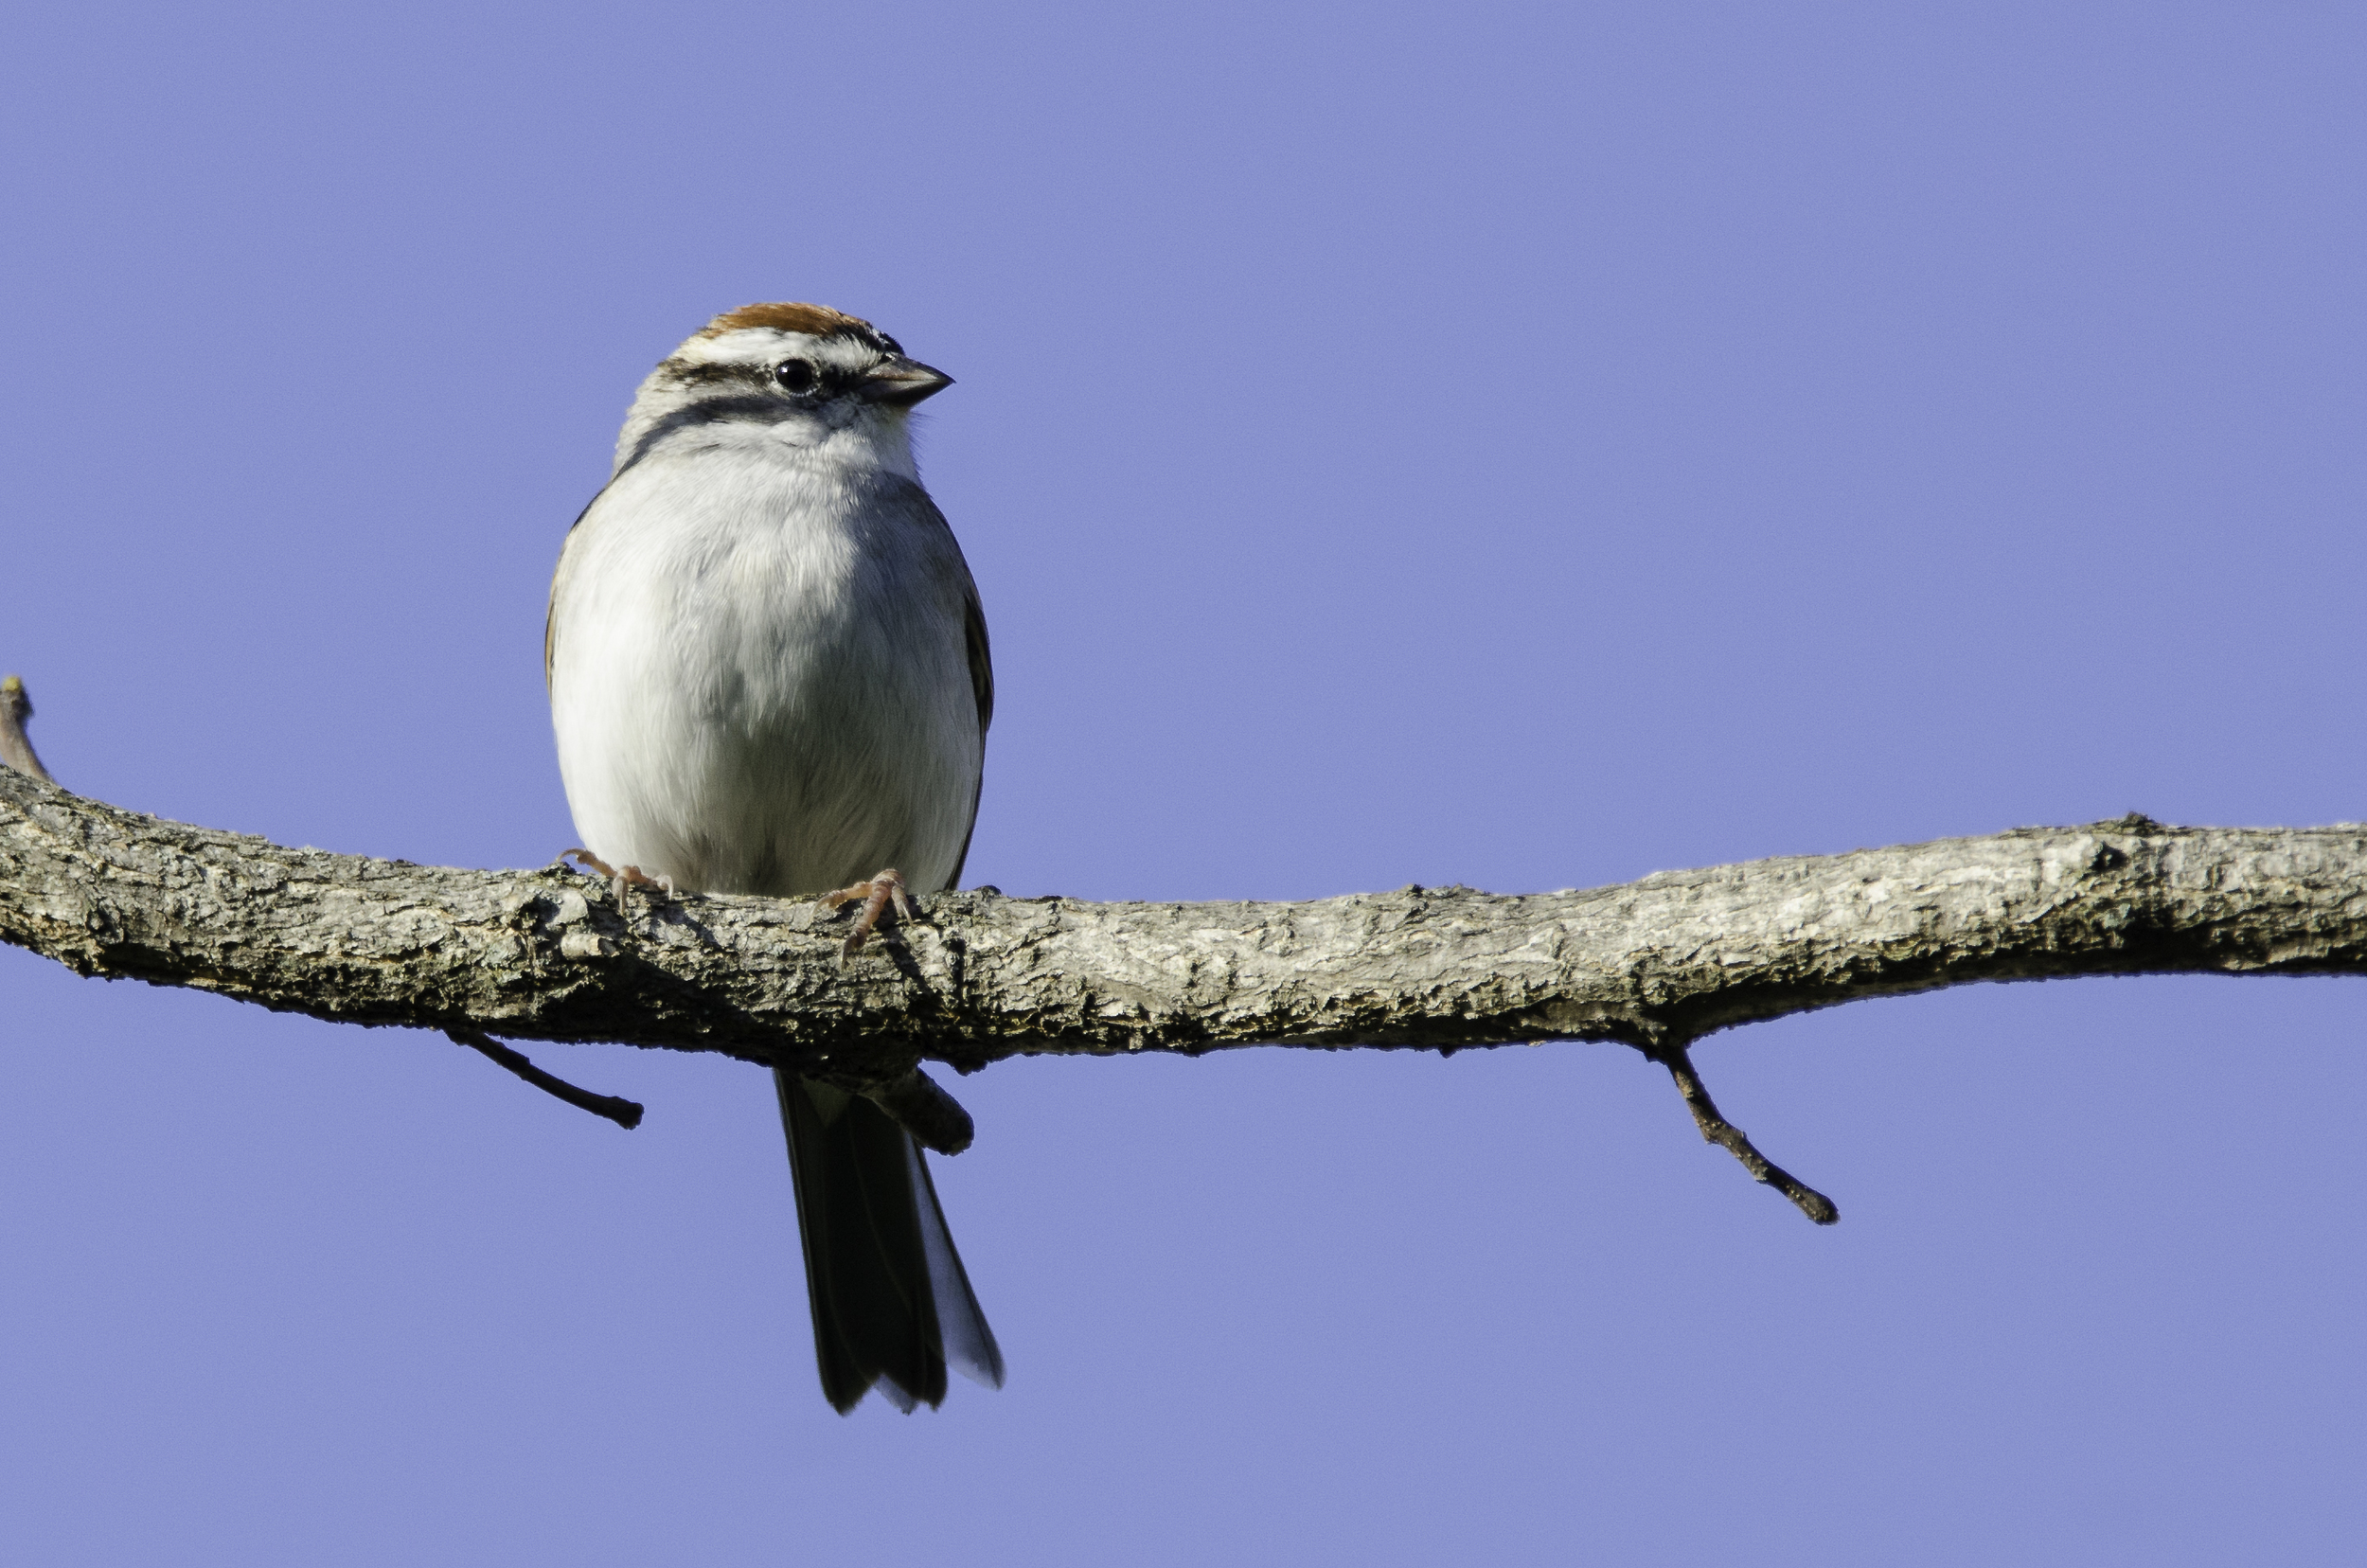 Chipping Sparrow  Nikon D7000 ISO 500 500mm f/10 1/640 sec.